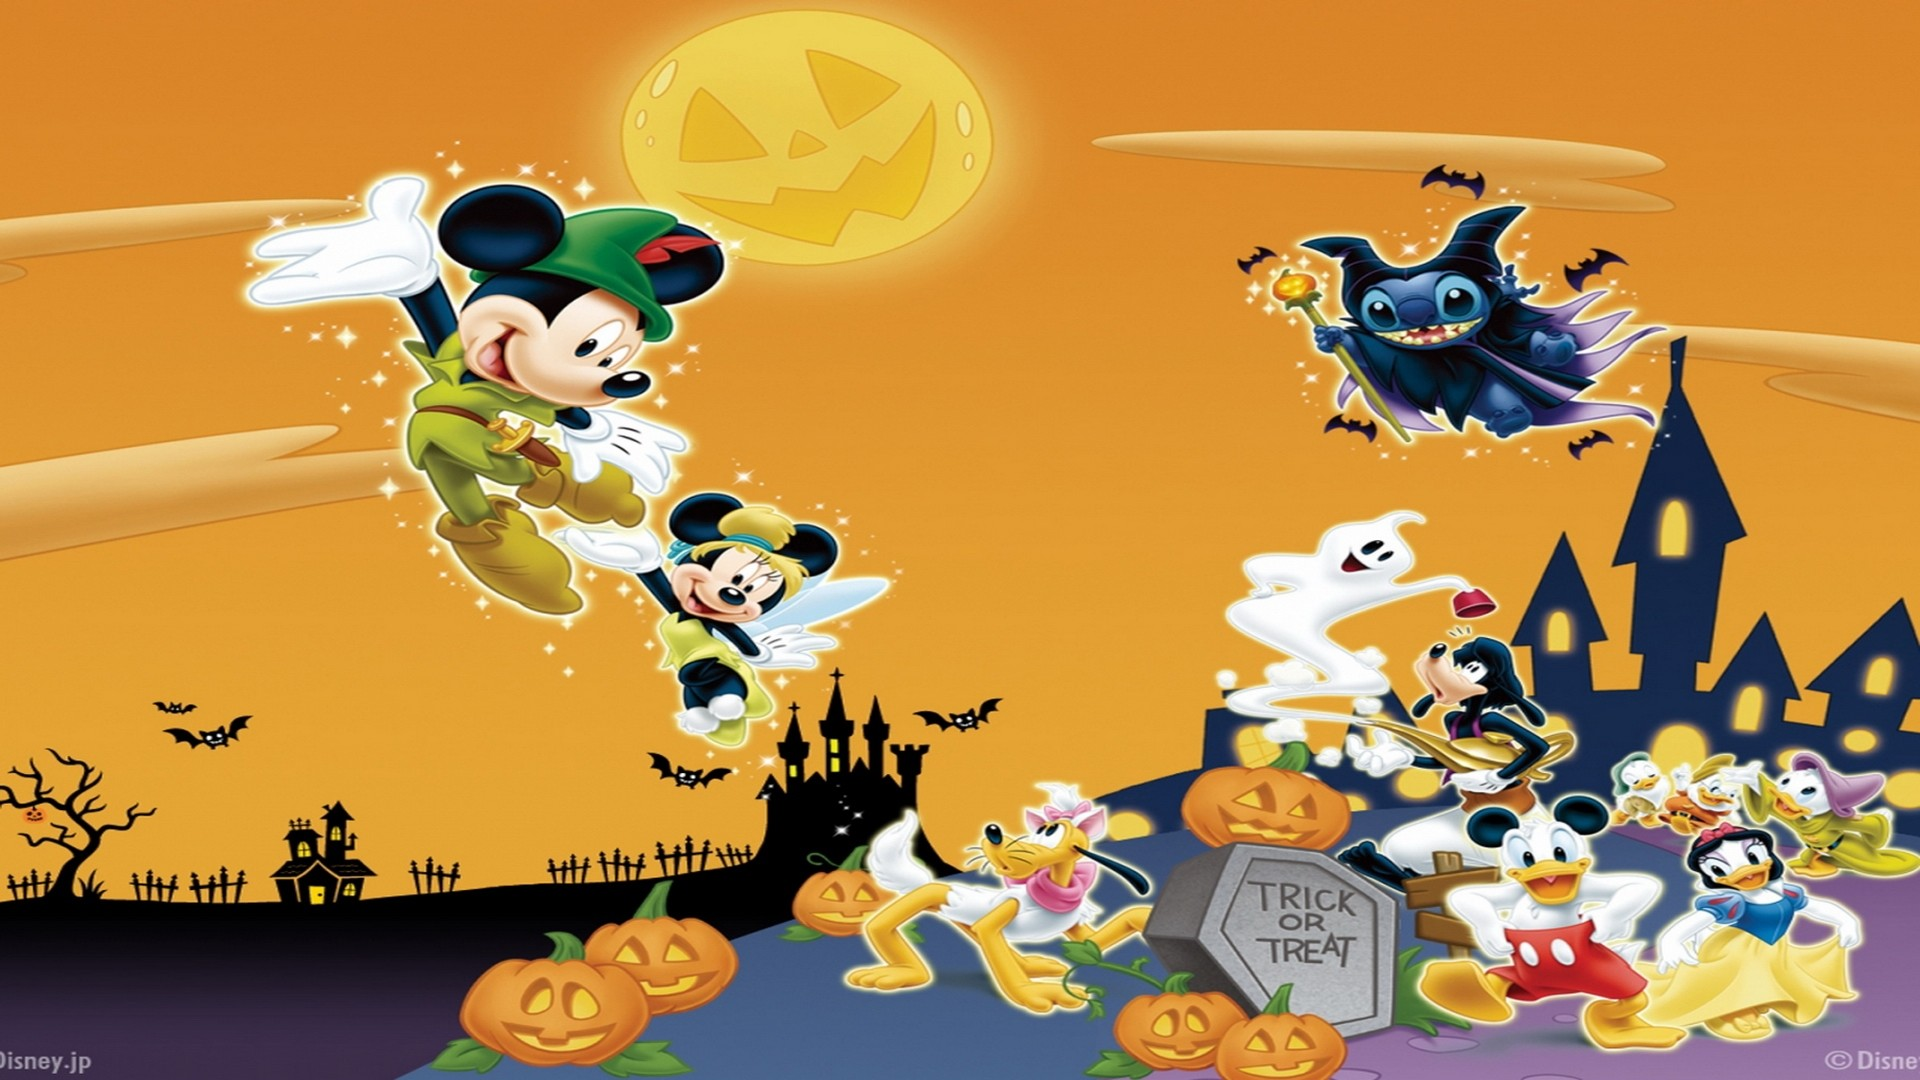 Amazing Wallpaper Halloween Screensaver - 22444  HD_882586.jpg